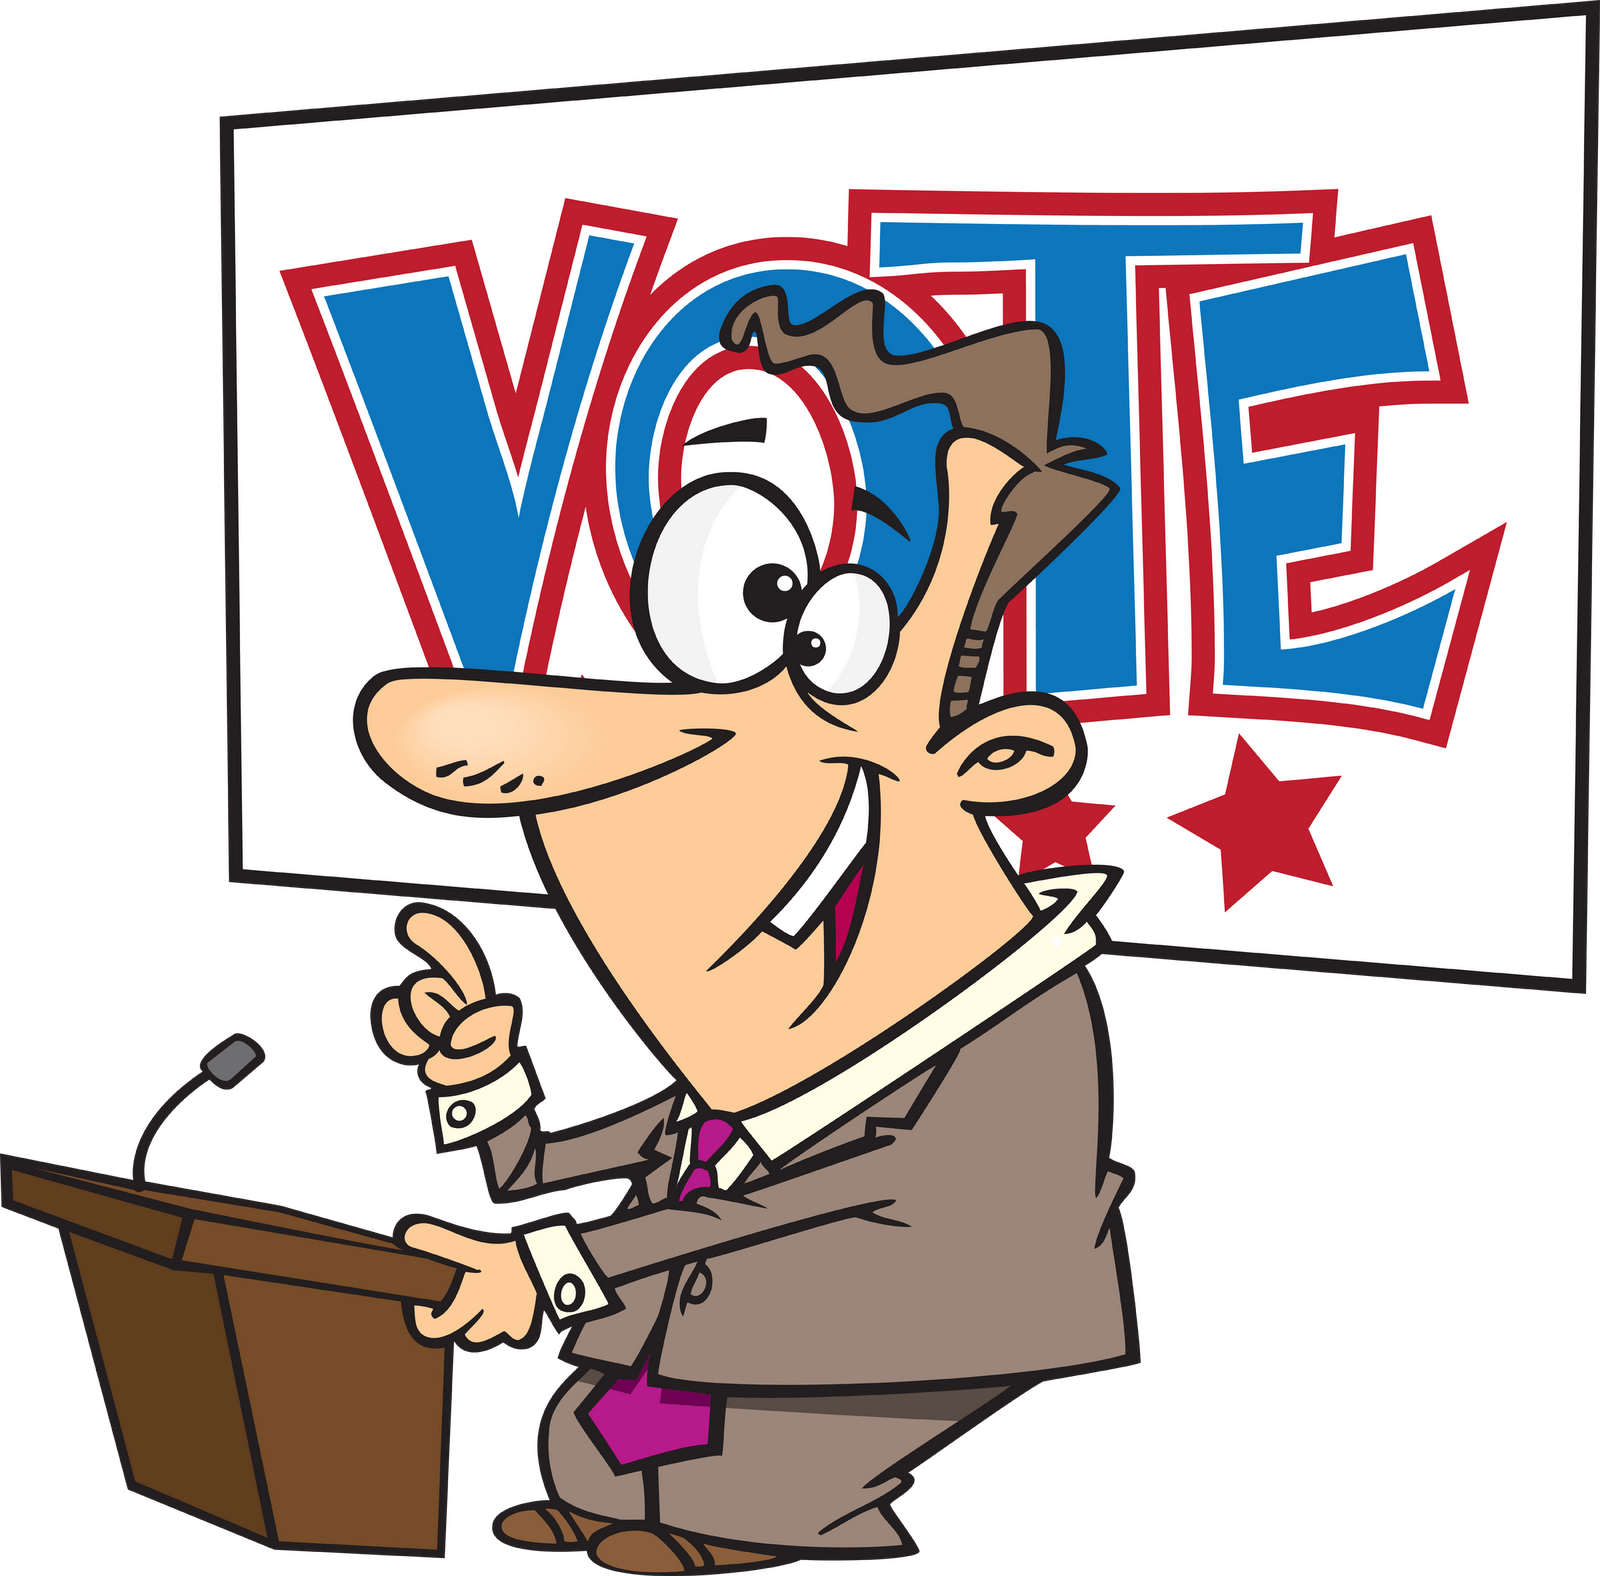 Democracy clipart school election. Campaign image group cliparts